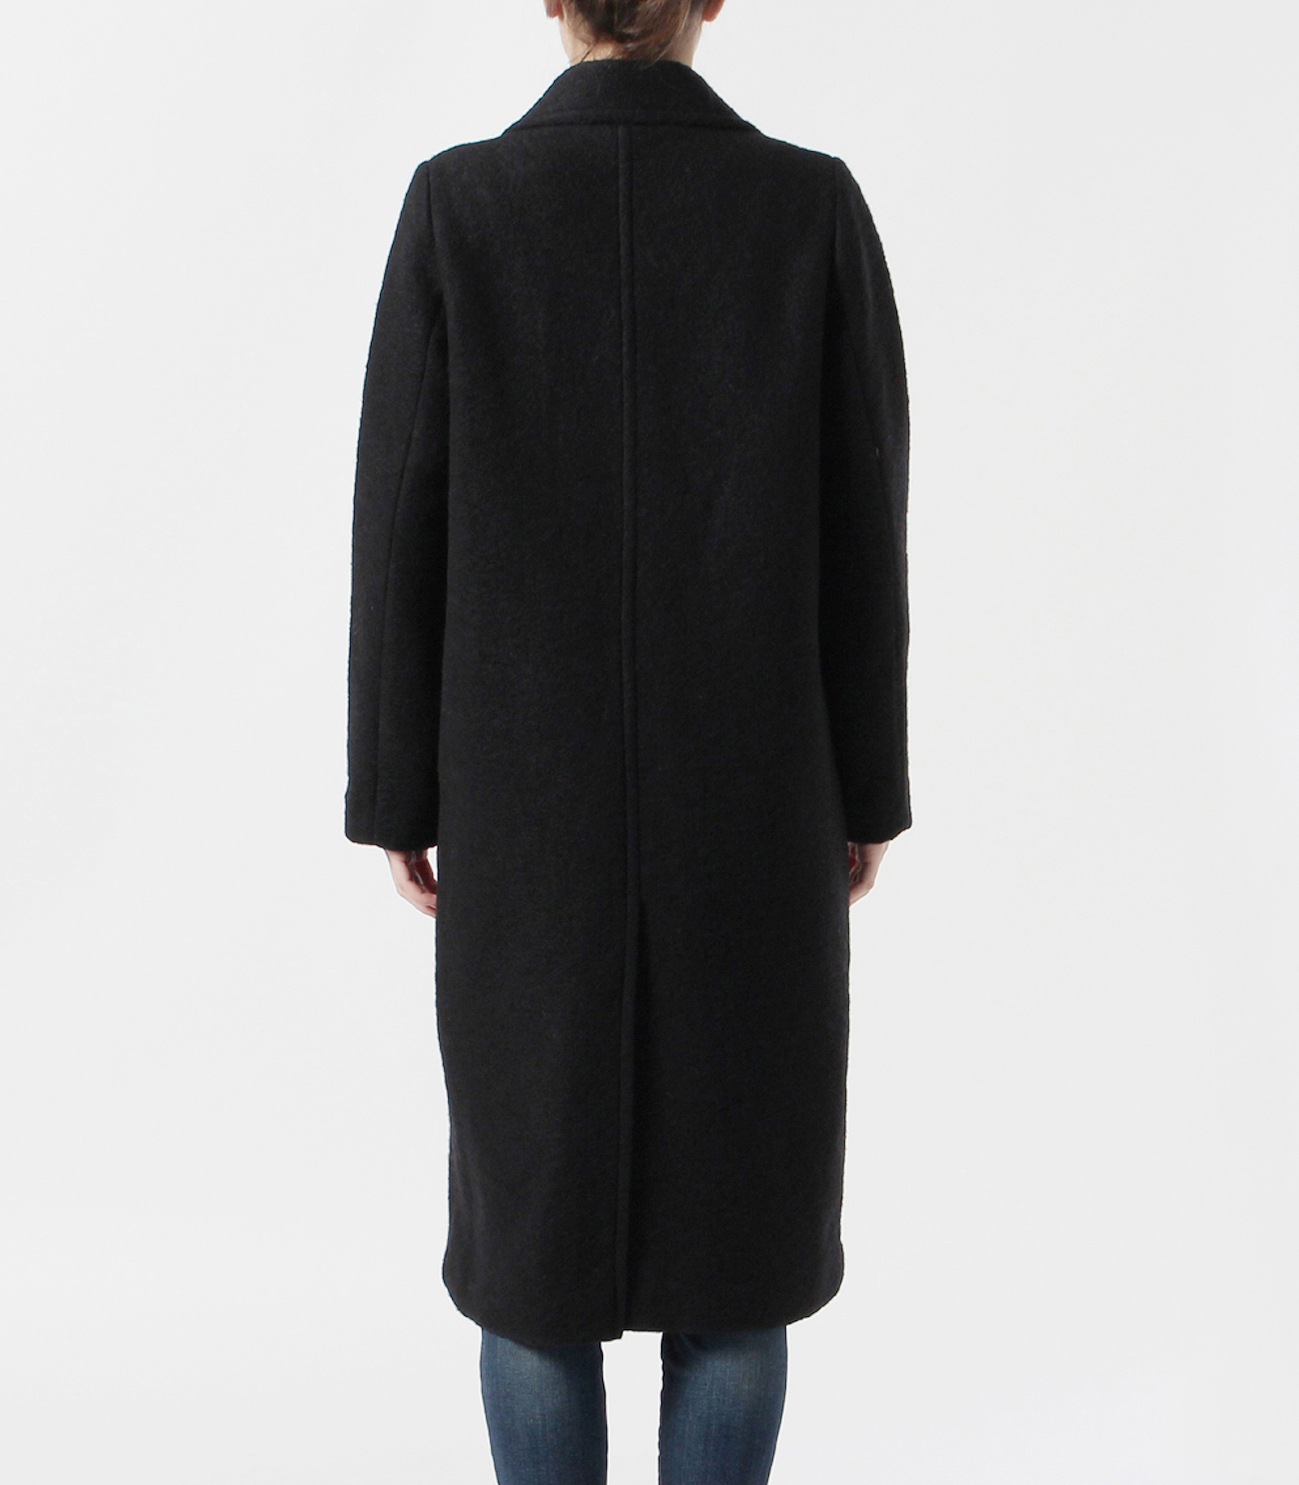 sliver knit chester coat 詳細画像 black 4